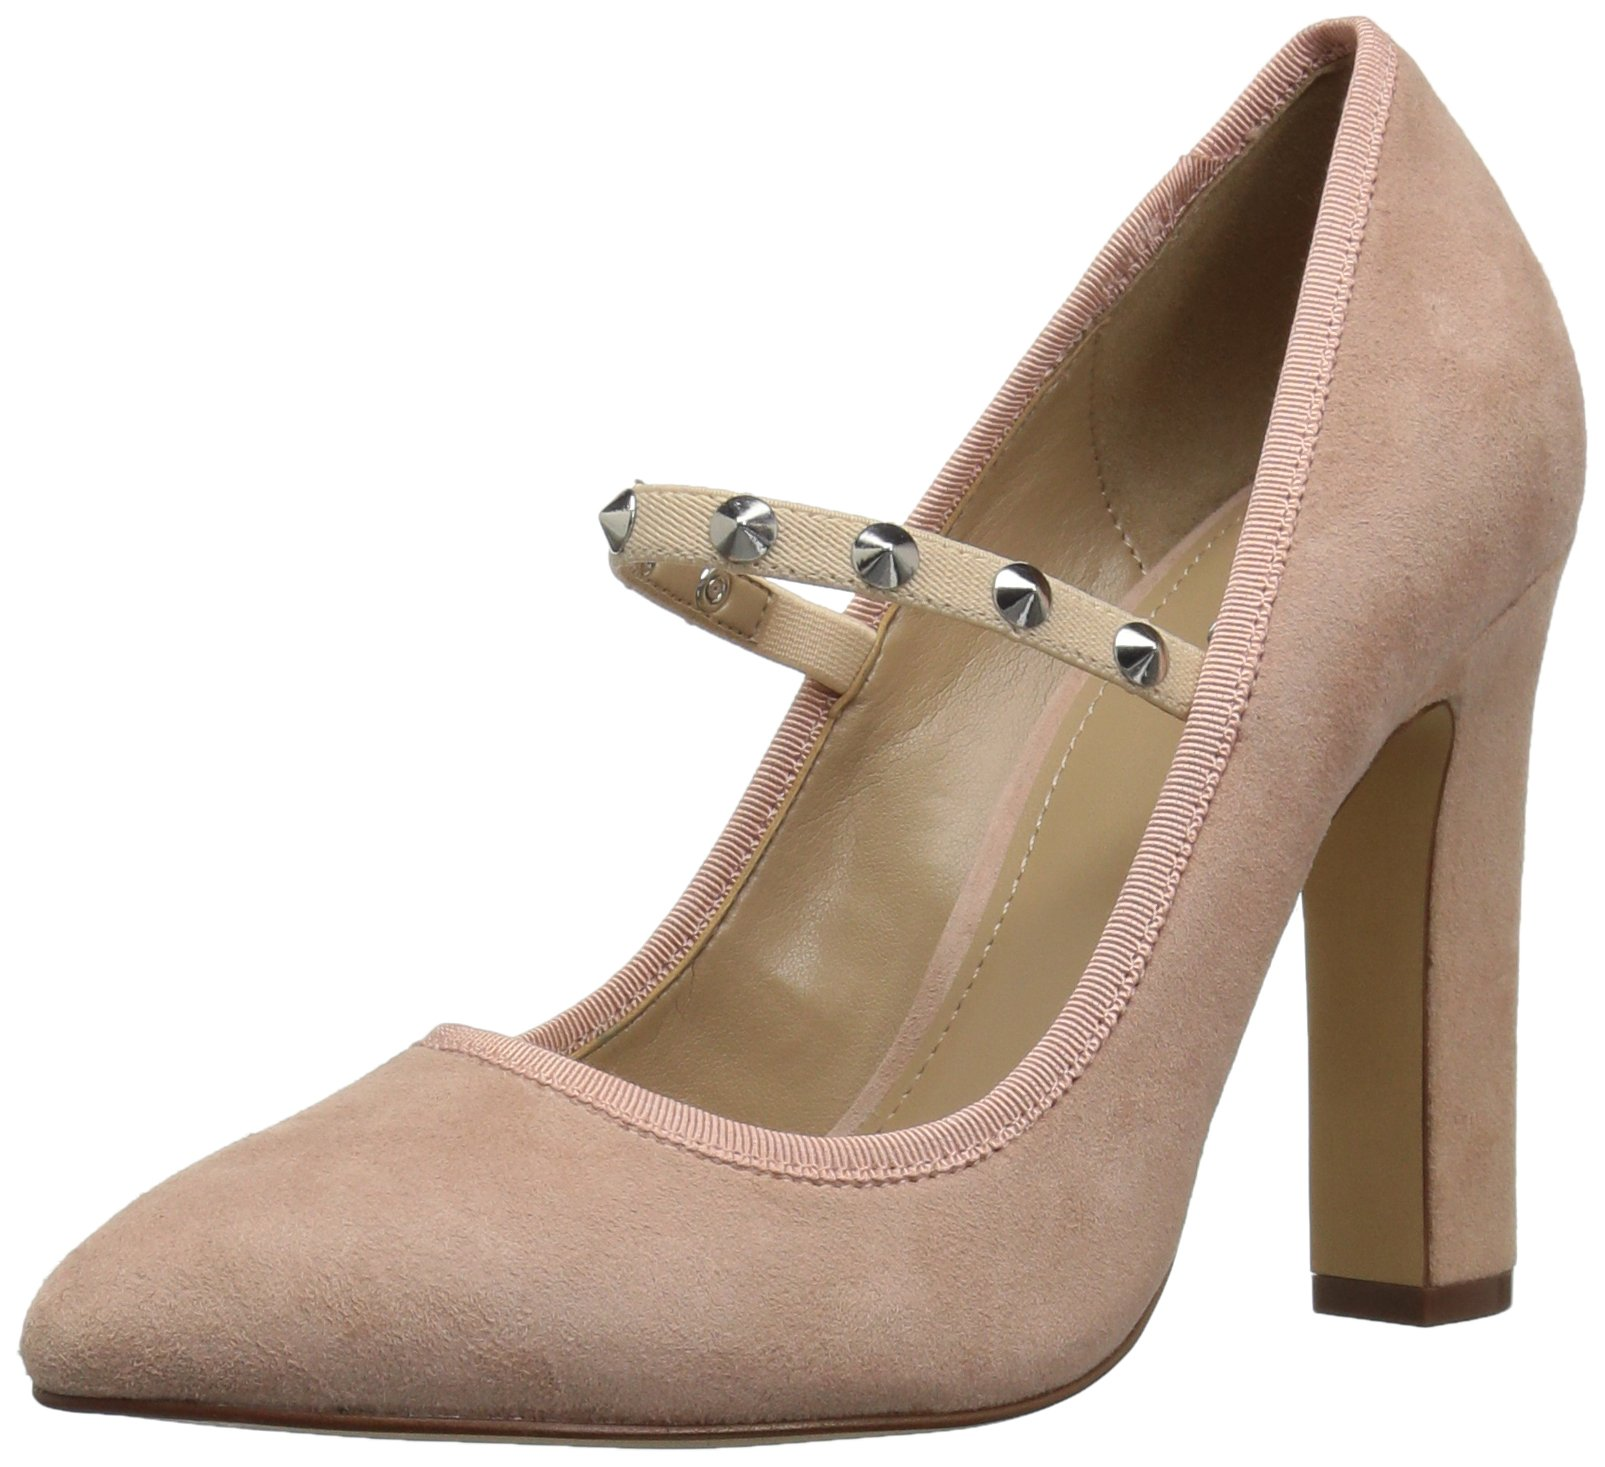 The Fix Women's Shay Studded Mary Jane Dress Pump, Petal Blush, 10 M US by The Fix (Image #1)